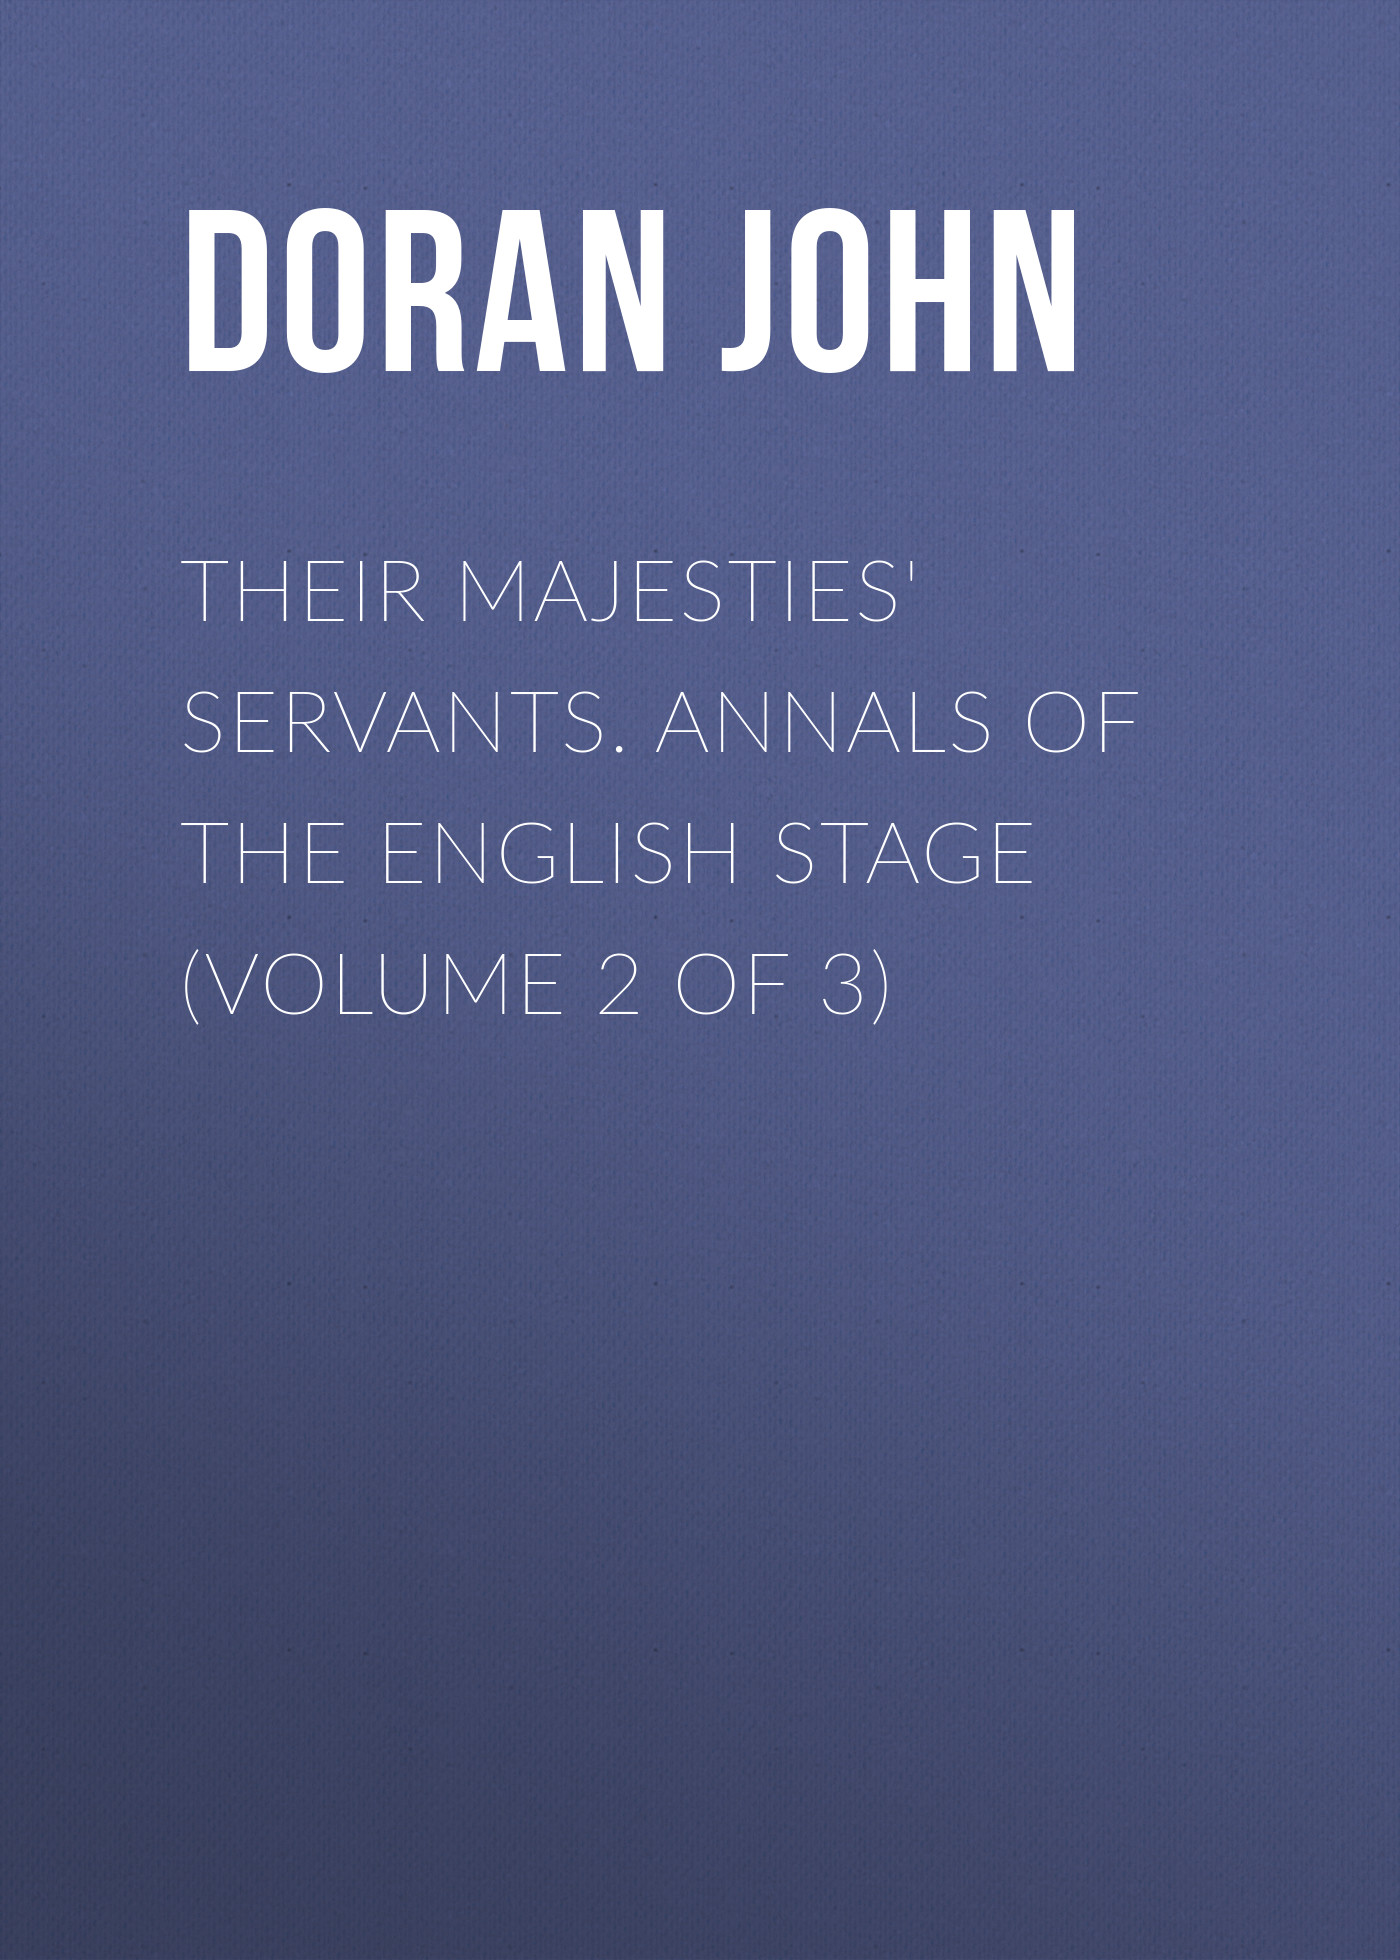 лучшая цена Doran John Their Majesties' Servants. Annals of the English Stage (Volume 2 of 3)